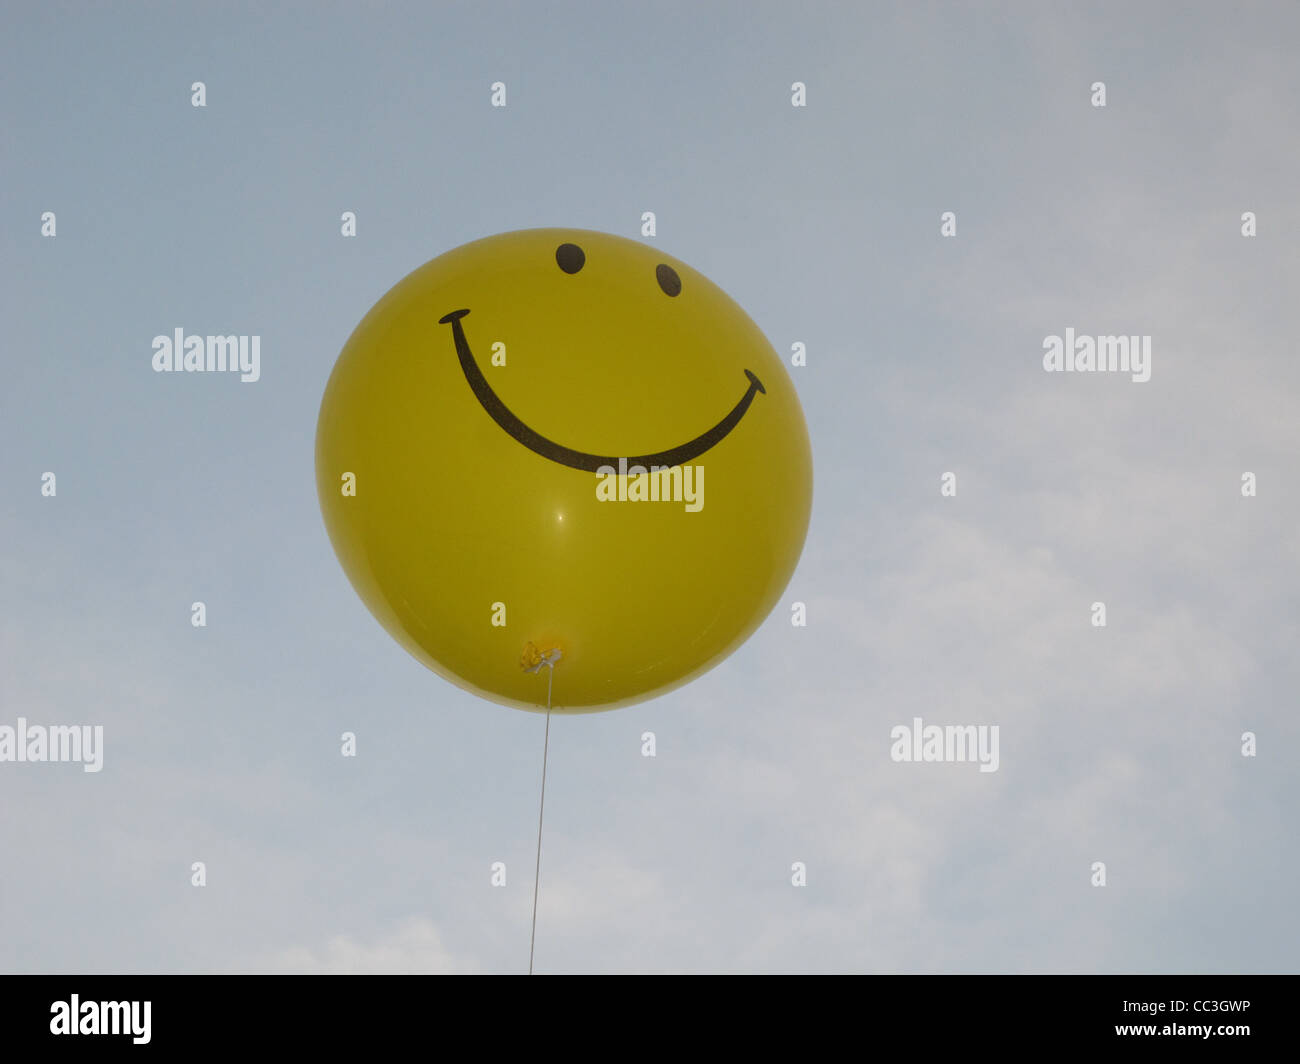 Smiley Face Balloon Flying In Sky Stock Photo 41875730 Alamy